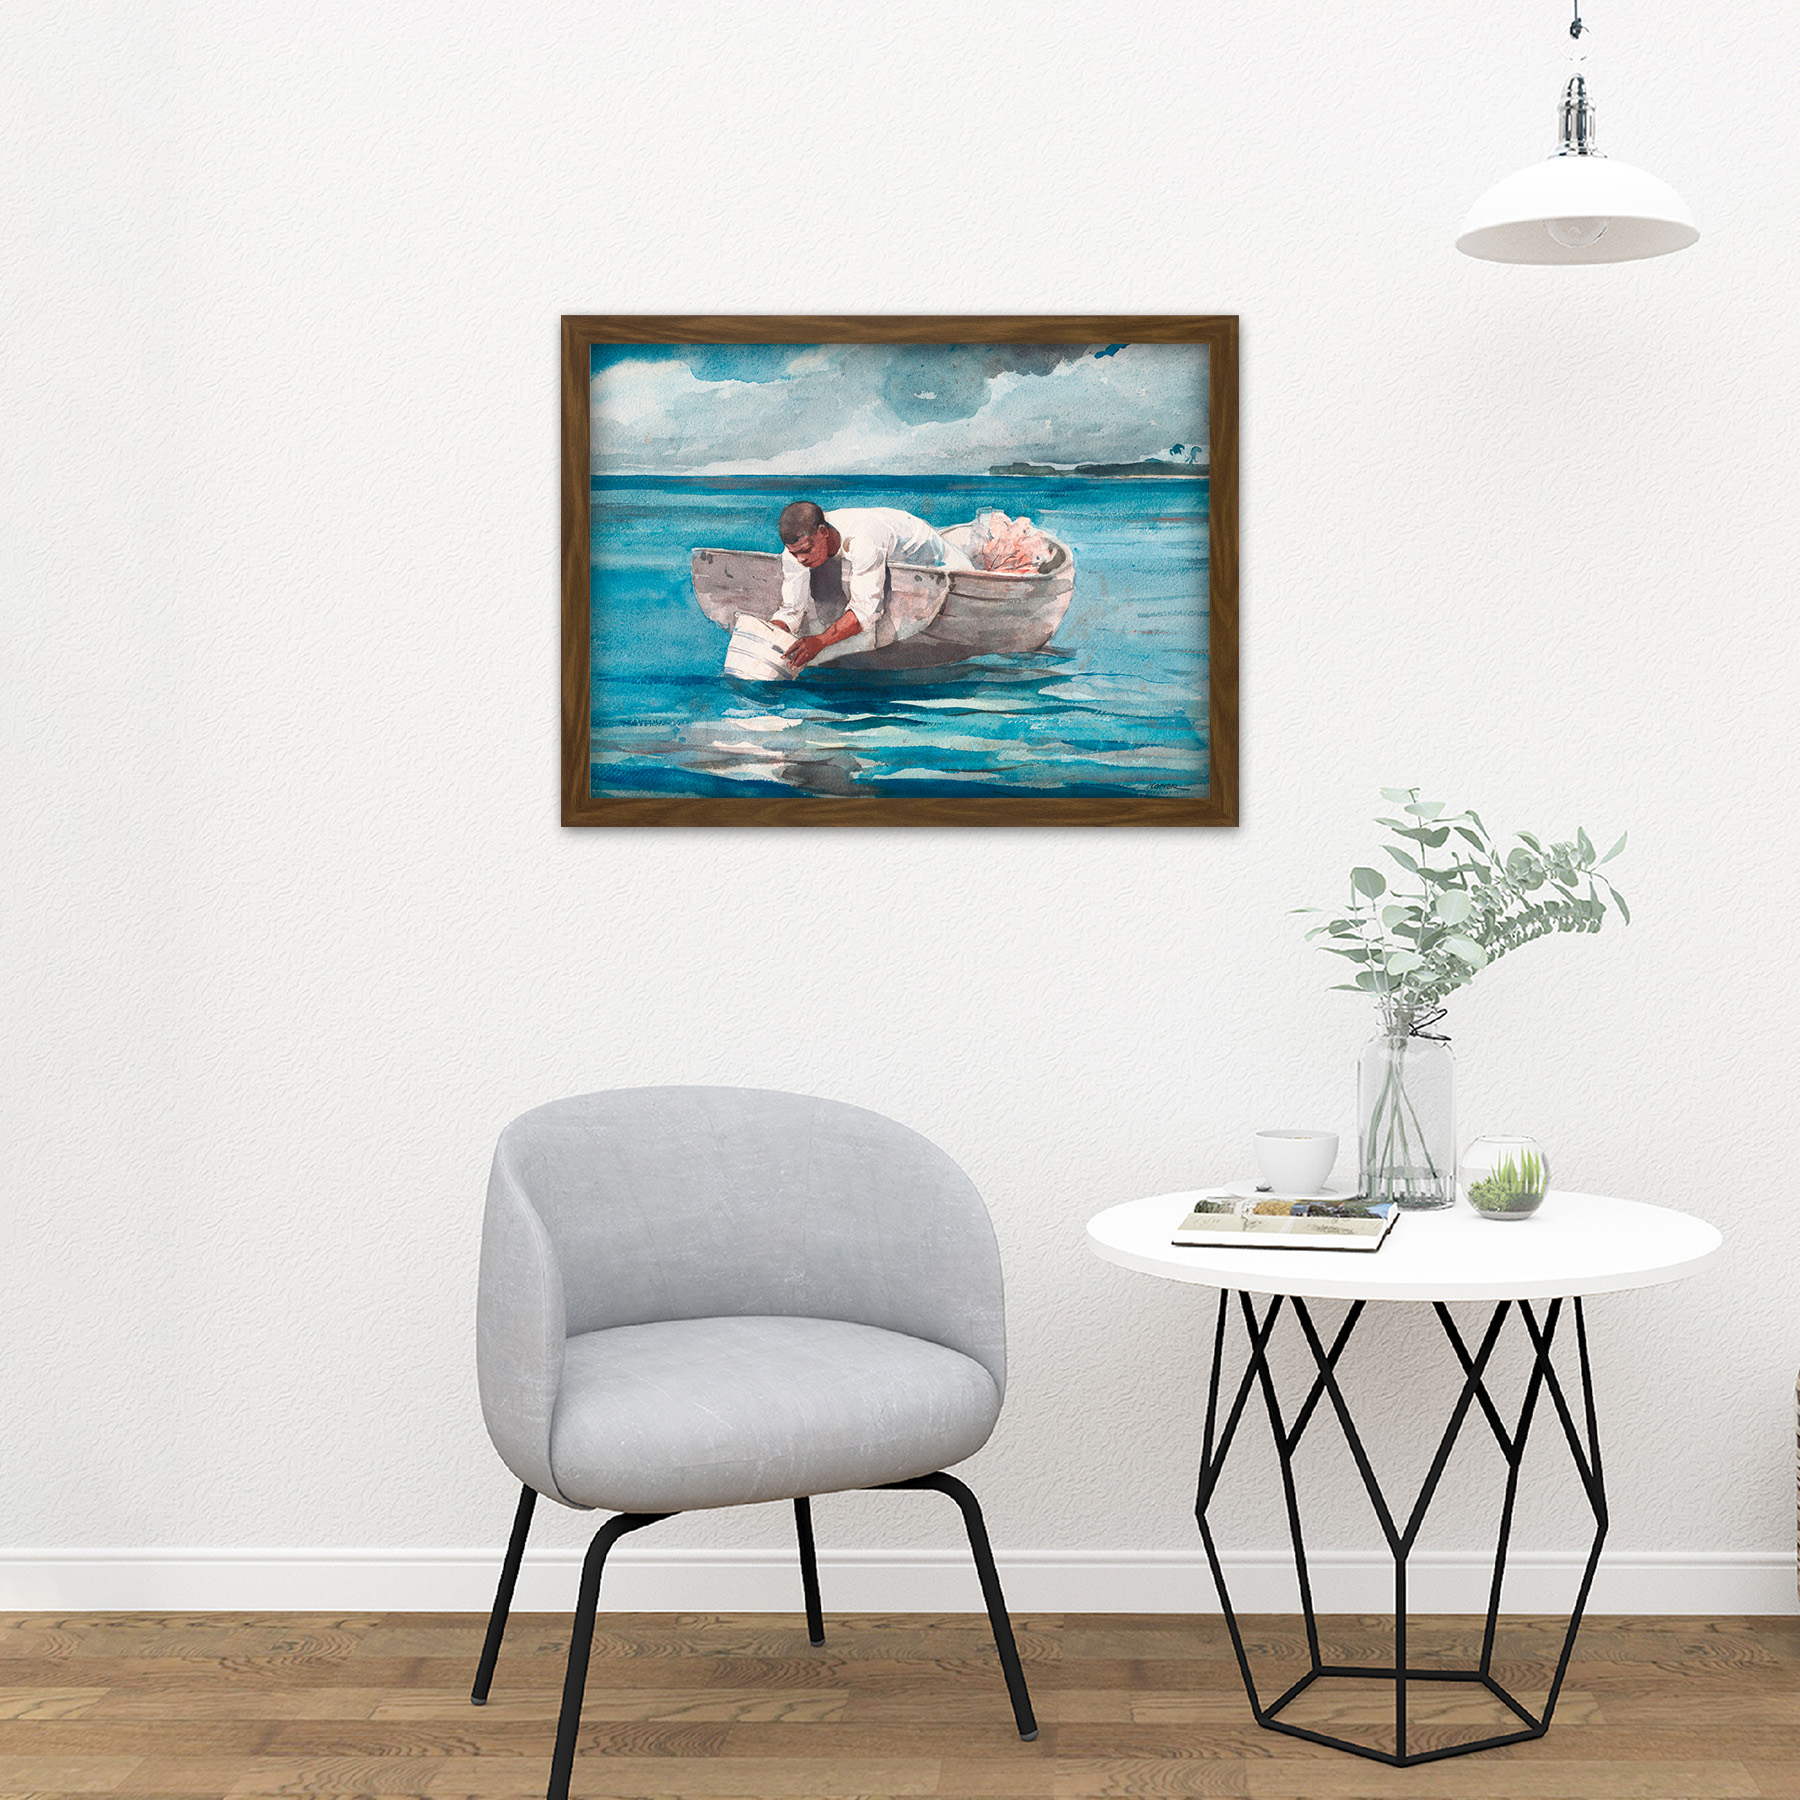 Homer-The-Water-Fan-Boat-Sea-Blue-Painting-Large-Framed-Art-Print thumbnail 13